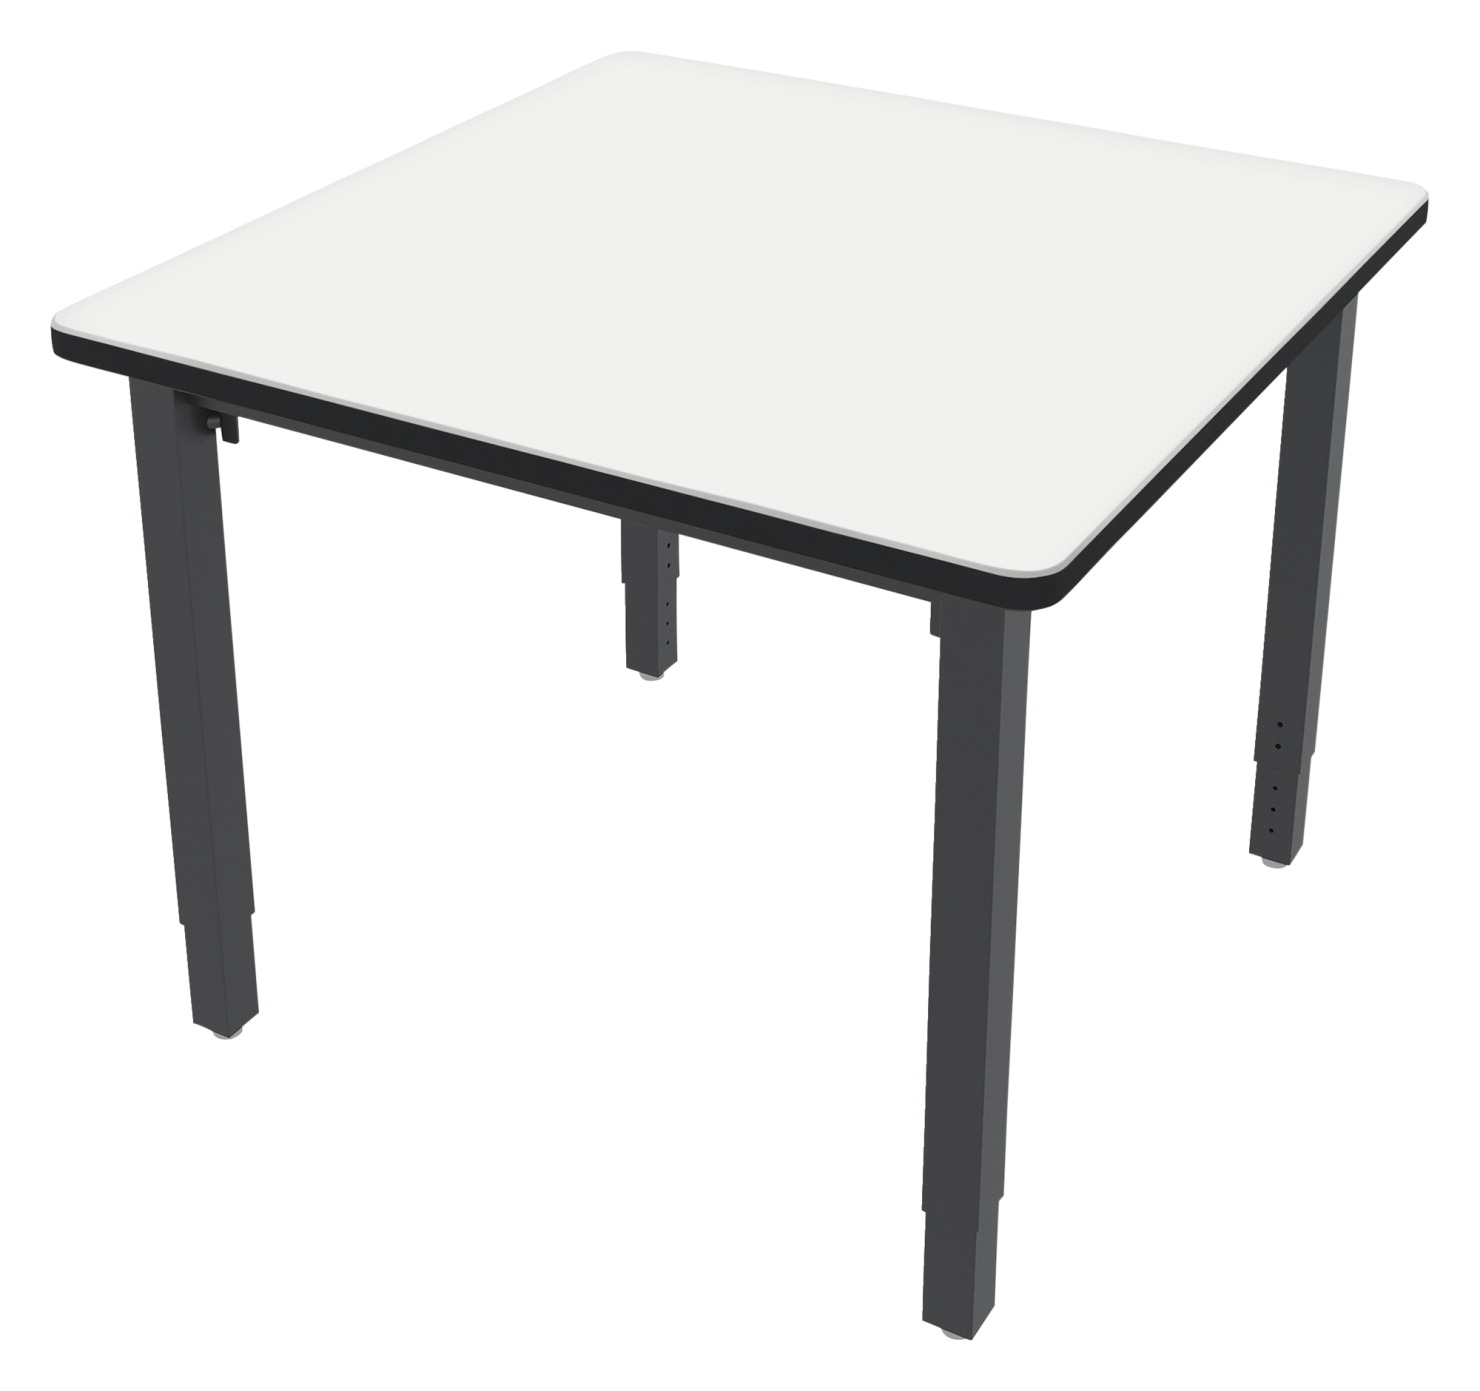 Classroom Select Vigor Table, 36 Inch Square Markerboard Top with LockEdge, Various Options